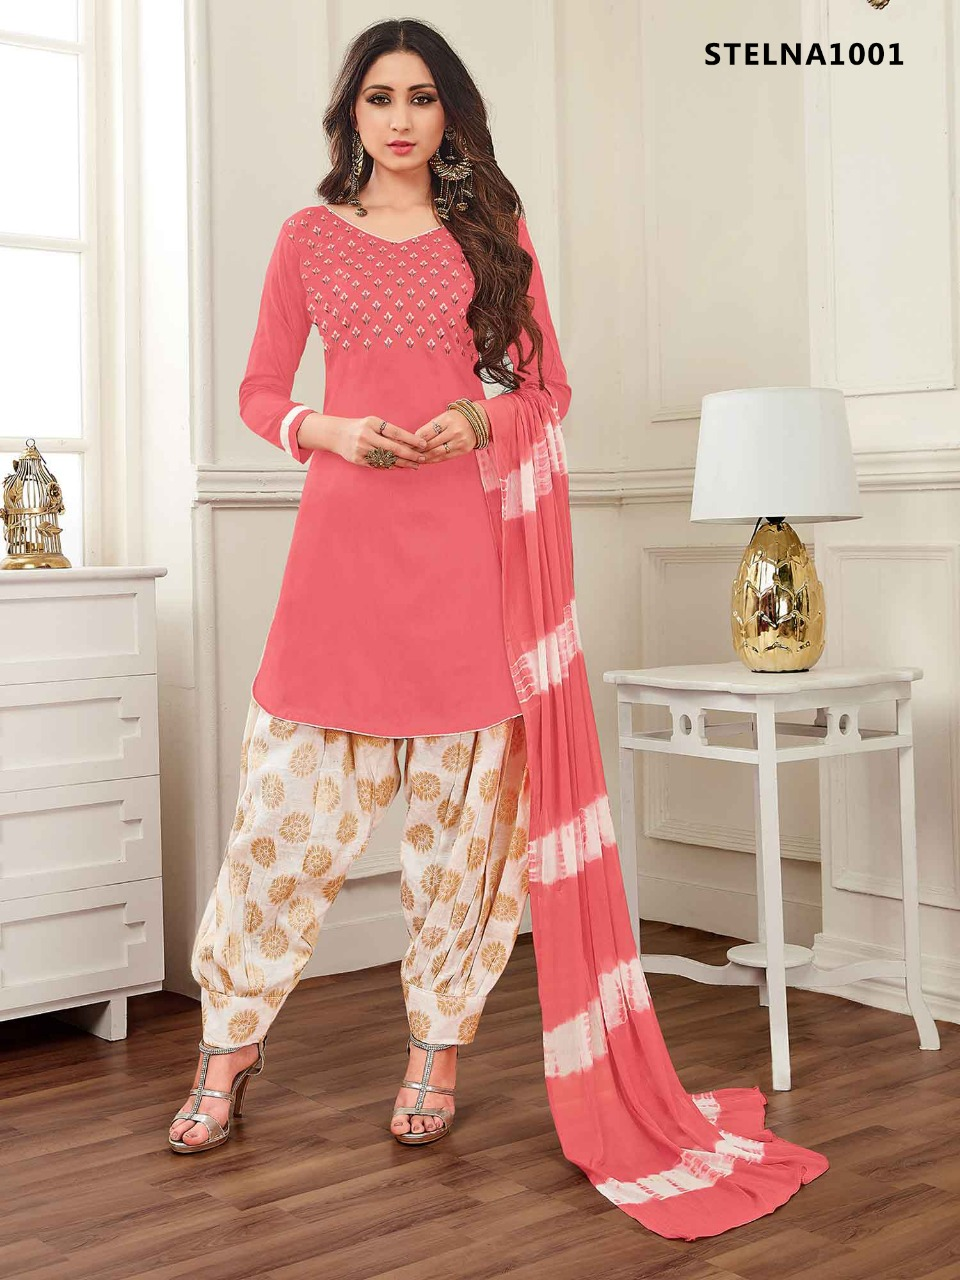 Banarsi Cotton Patiyala Collection Latest Punjabi Dress Wholesaler